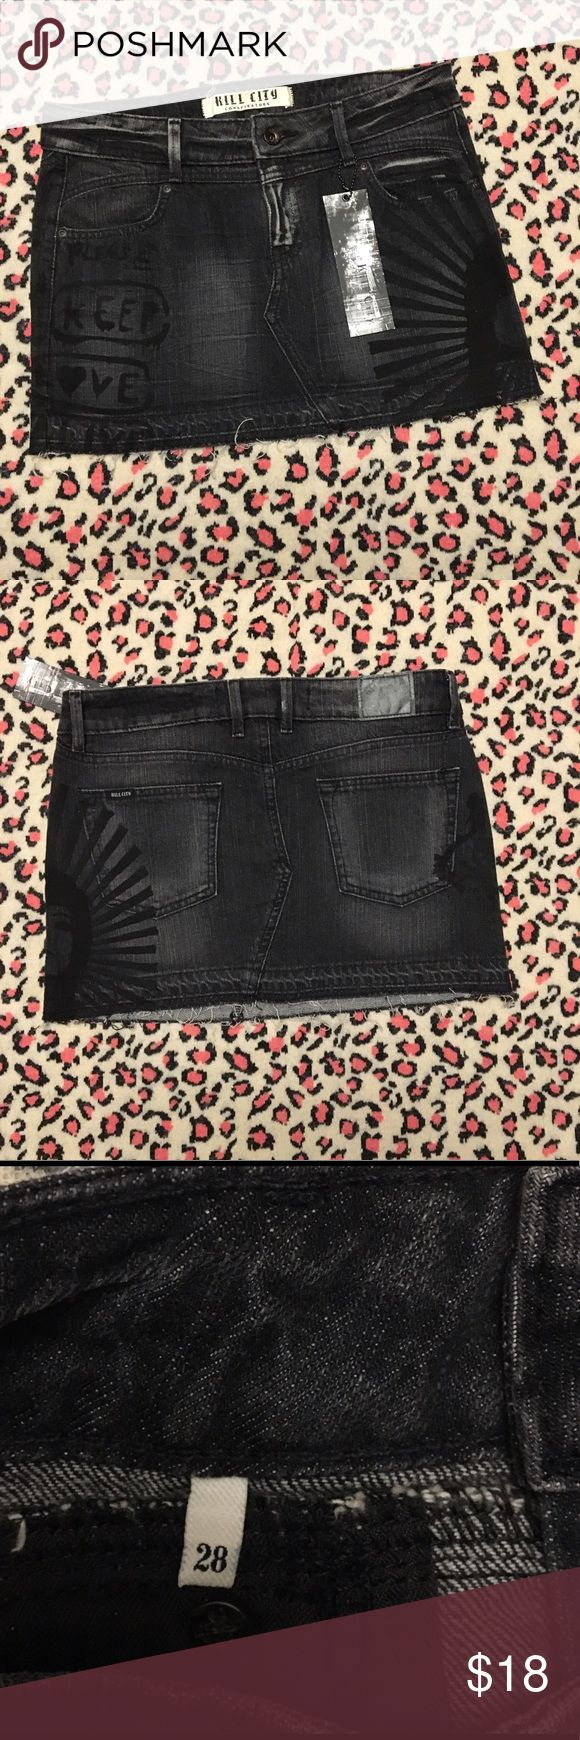 "NWT Kill City Conspirators dark denim mini skirt New with tags, size 28, total length 12.5"", waist 15.5"", hips 17"". 100% cotton. Lightly frayed/distressed trim. Skirts Mini"